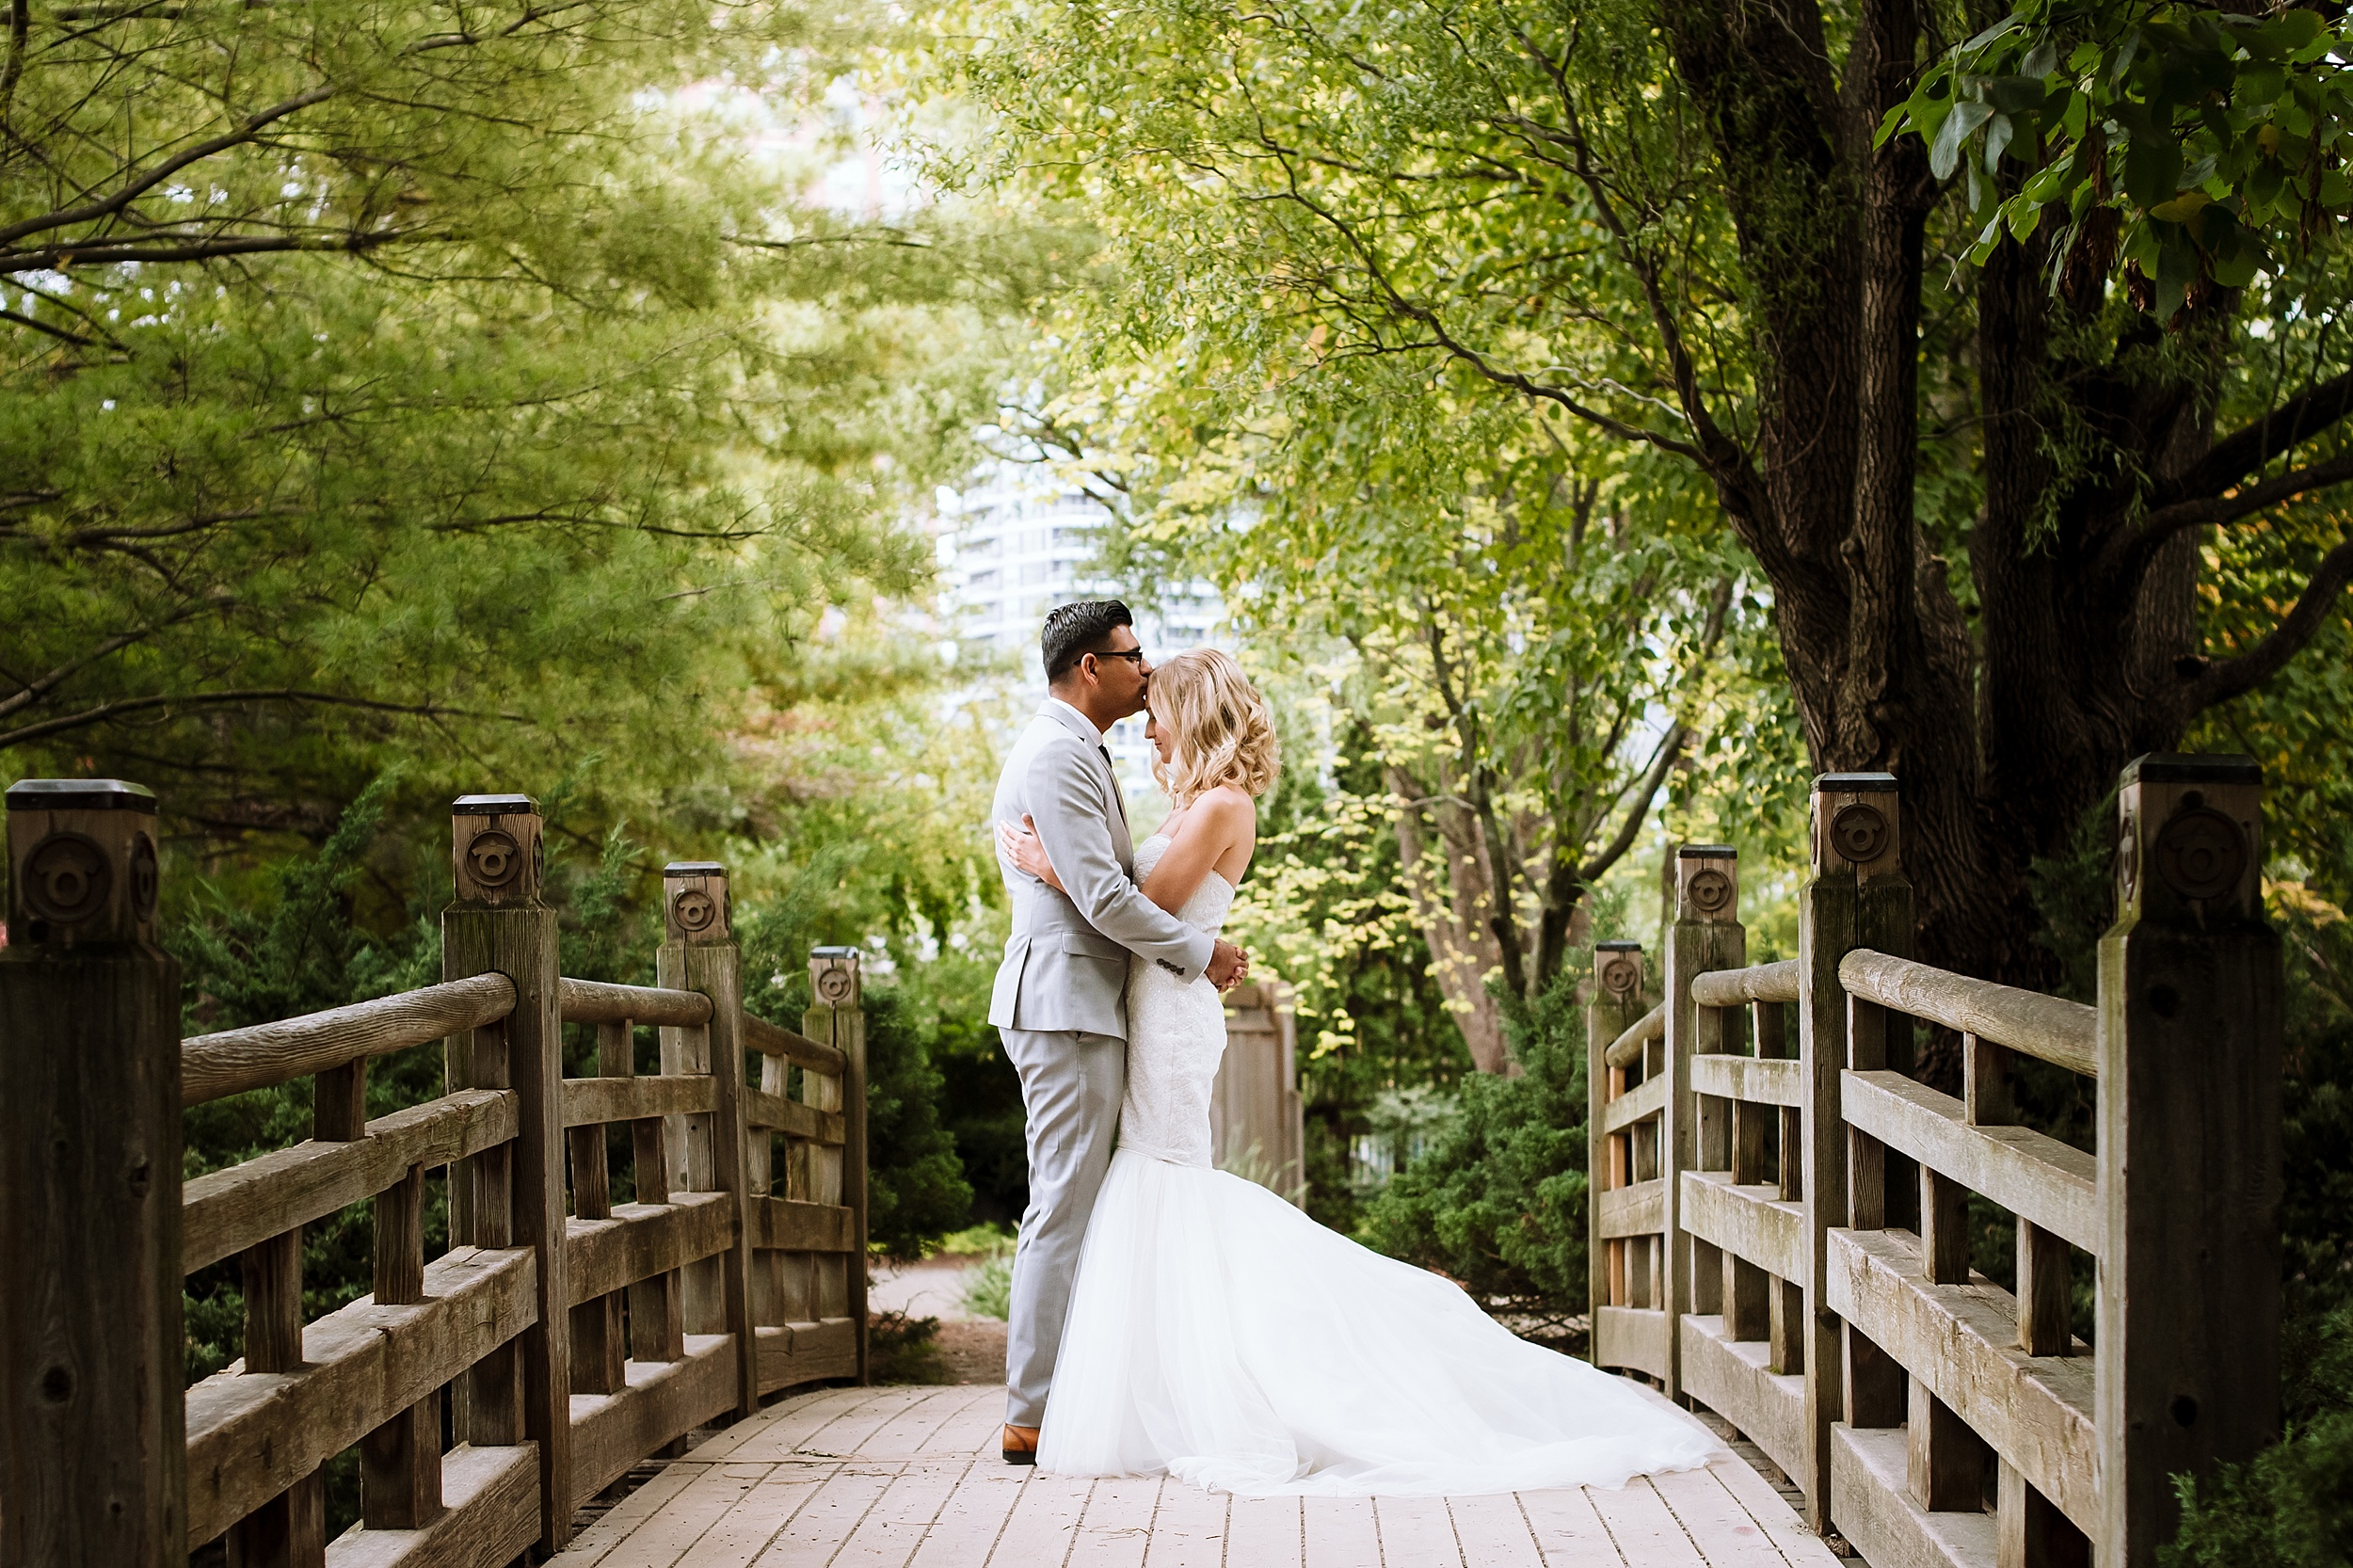 Kariya_Park_Wedding_Shoot_Toronto_Photographer_0045.jpg